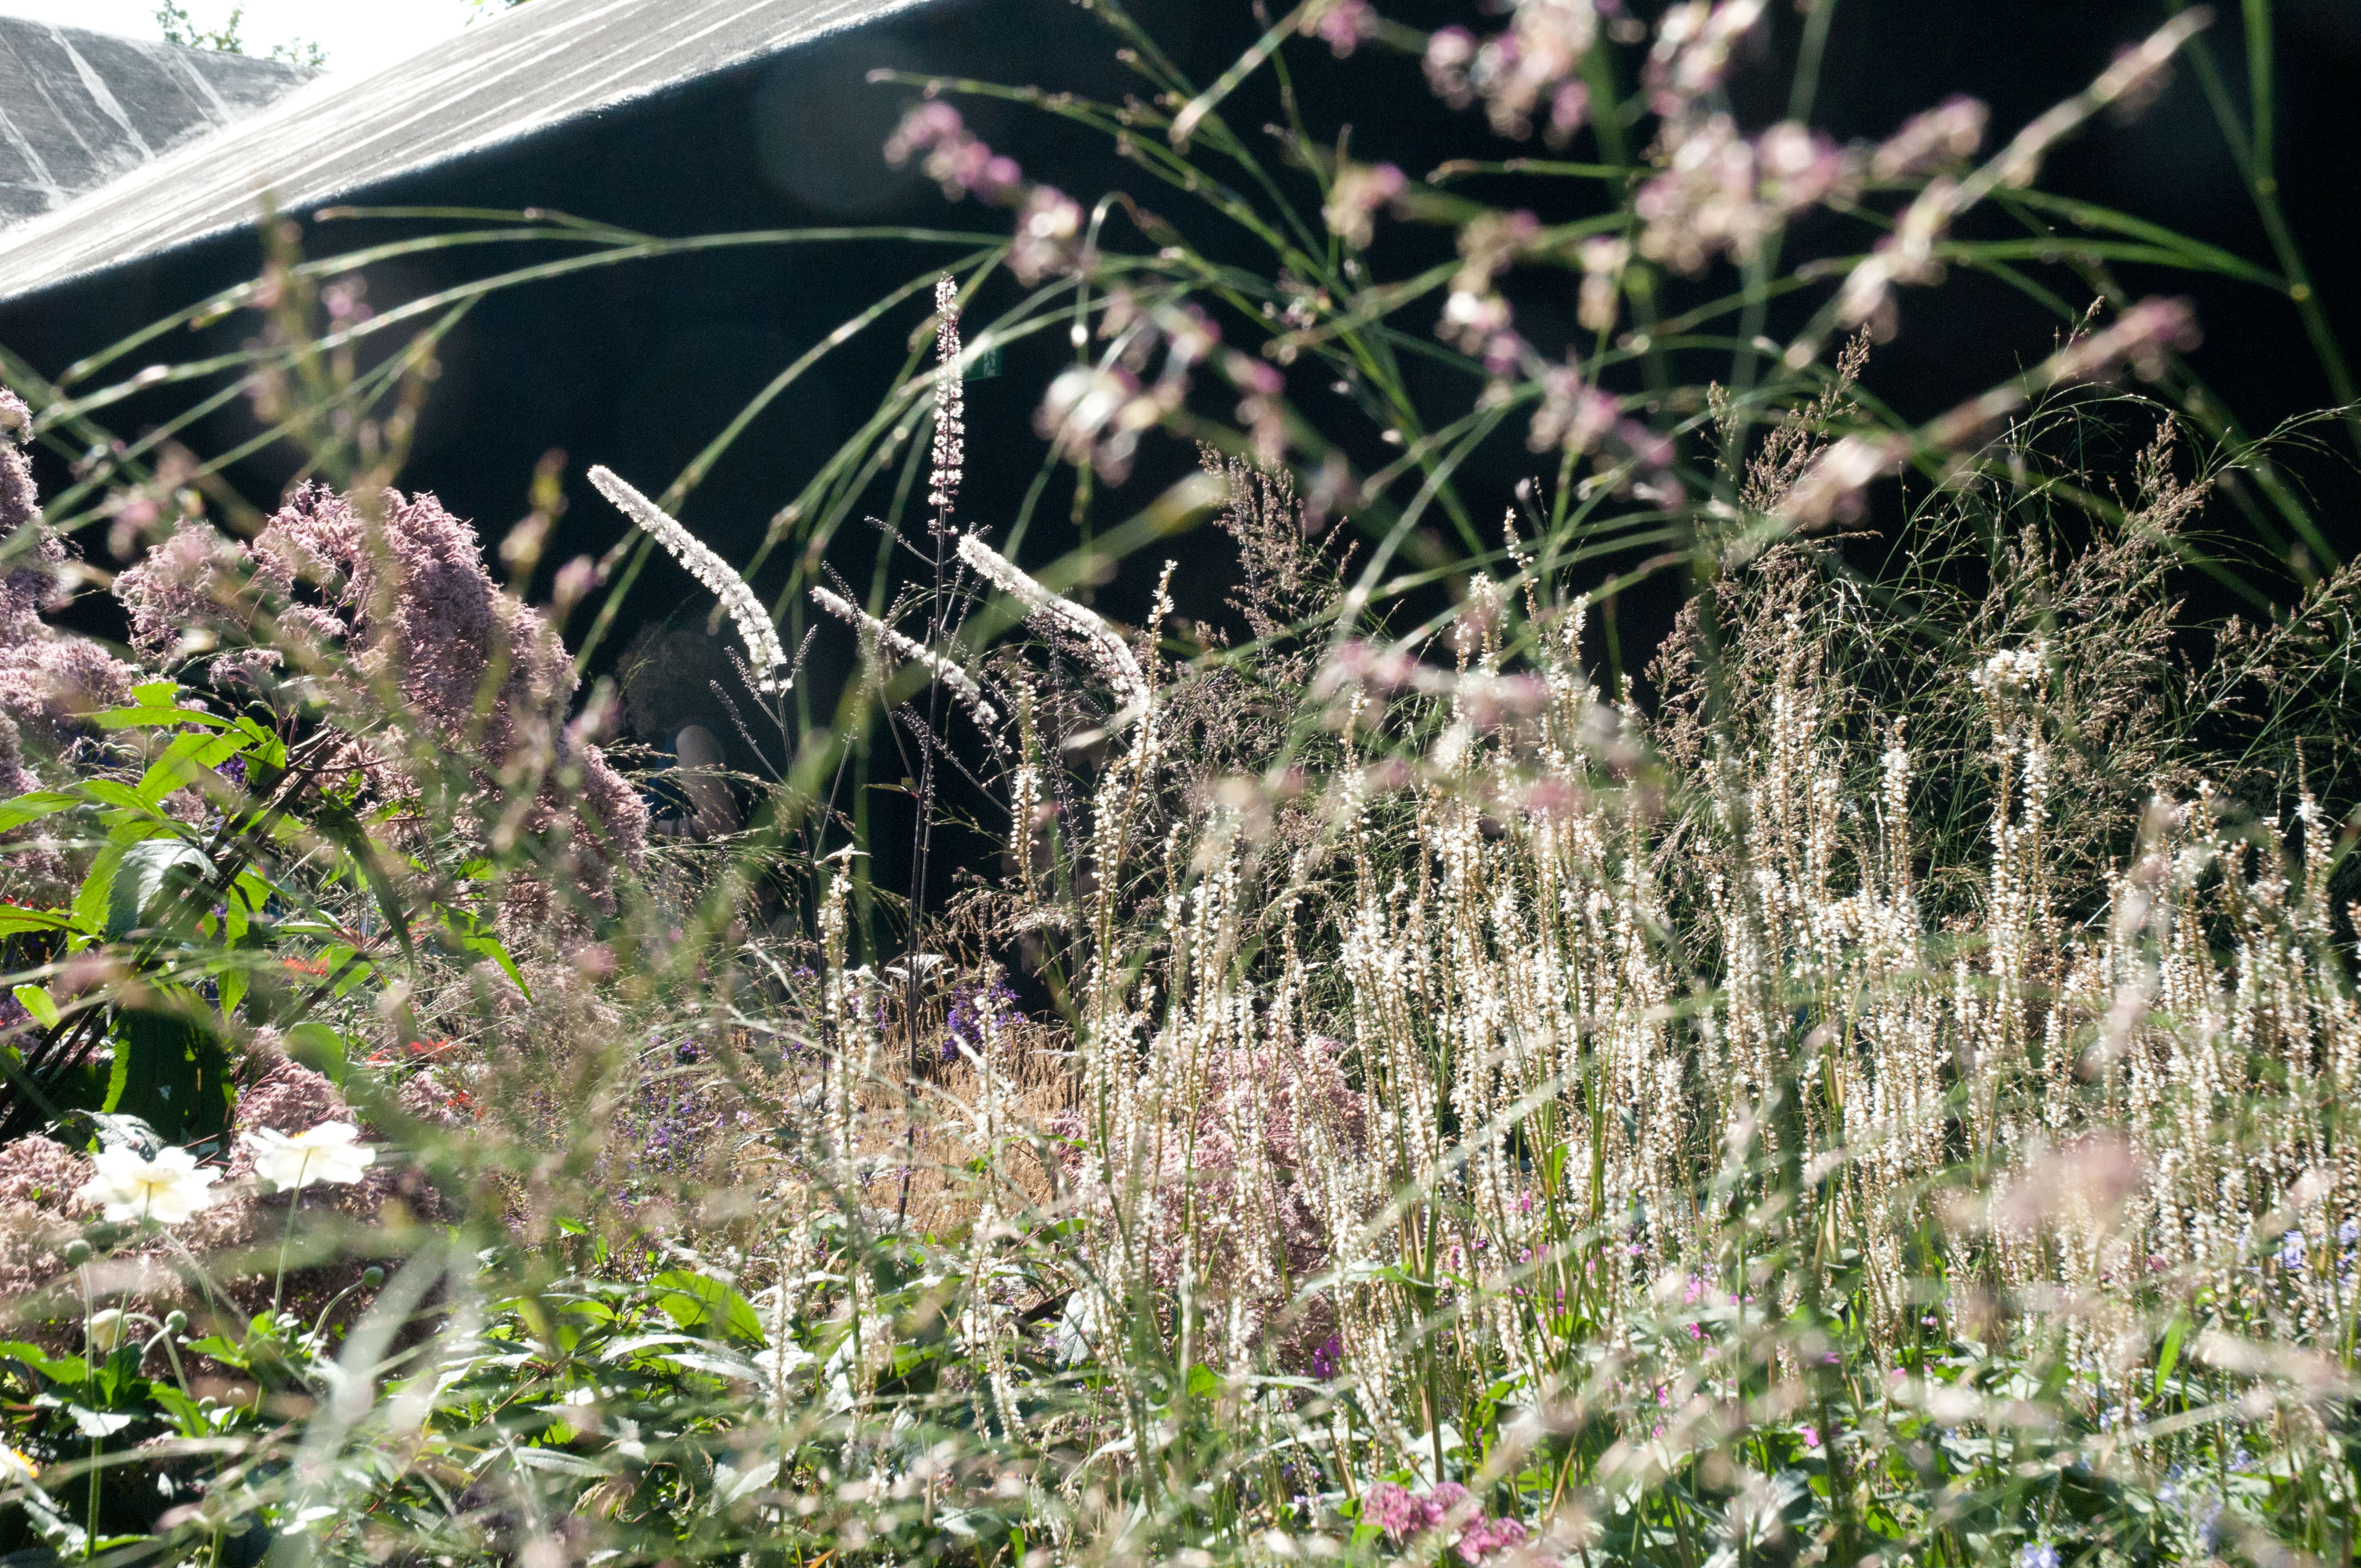 Piet oudolf s london prairie planting out of my shed for Piet oudolf serpentine gallery